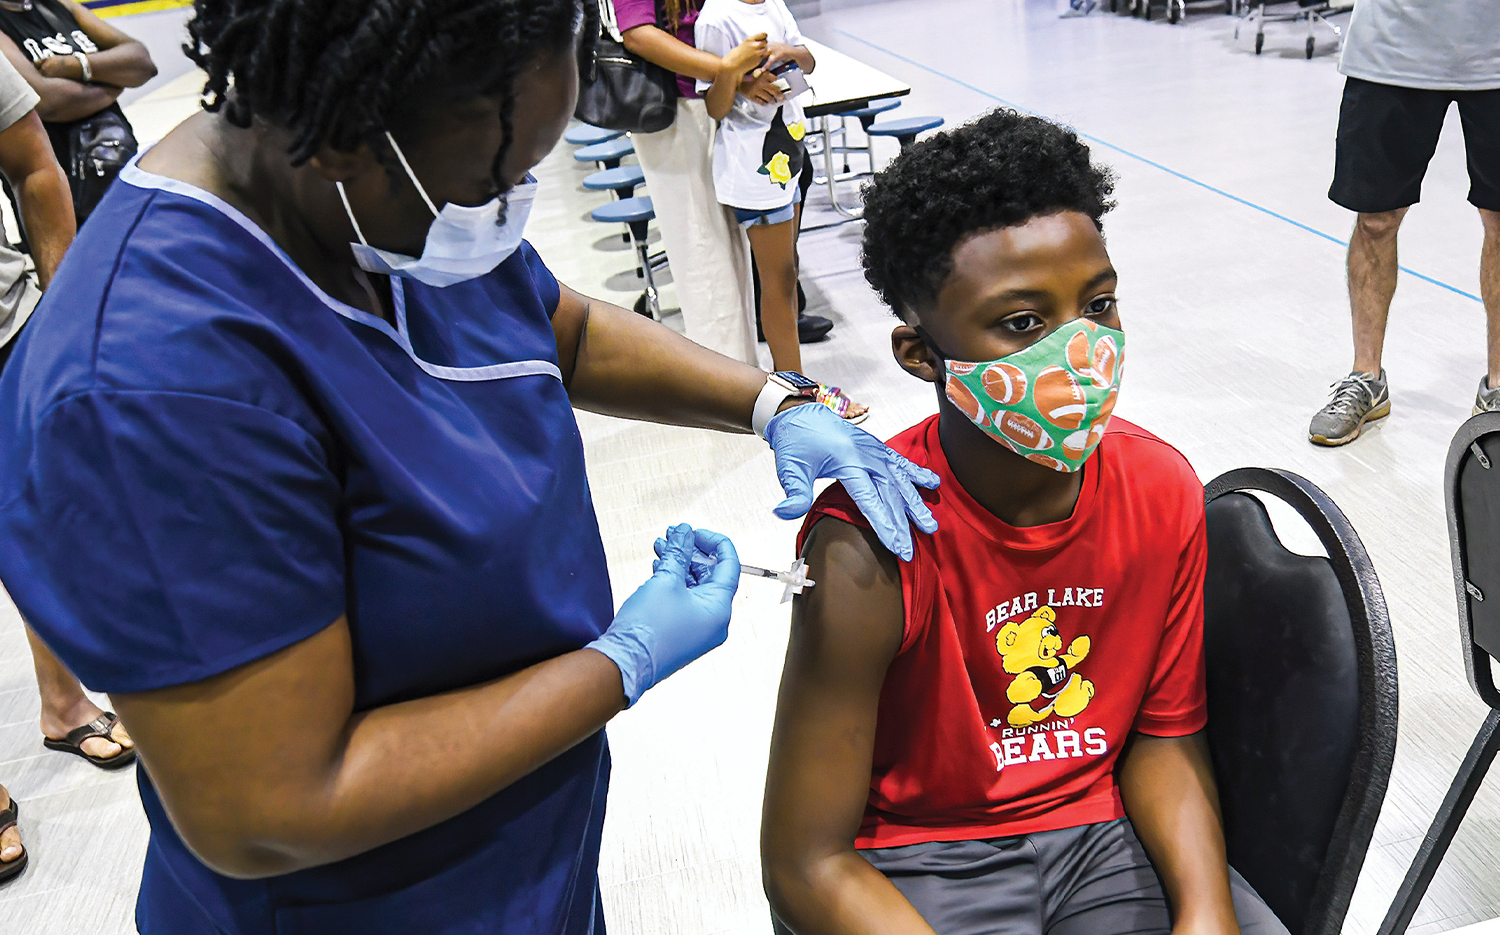 A nurse gives a dose of the Pfizer vaccine to a 12-year-old boy at a COVID-19 vaccine clinic at Lyman High School in Longwood, Fla., on the day before classes began in August.